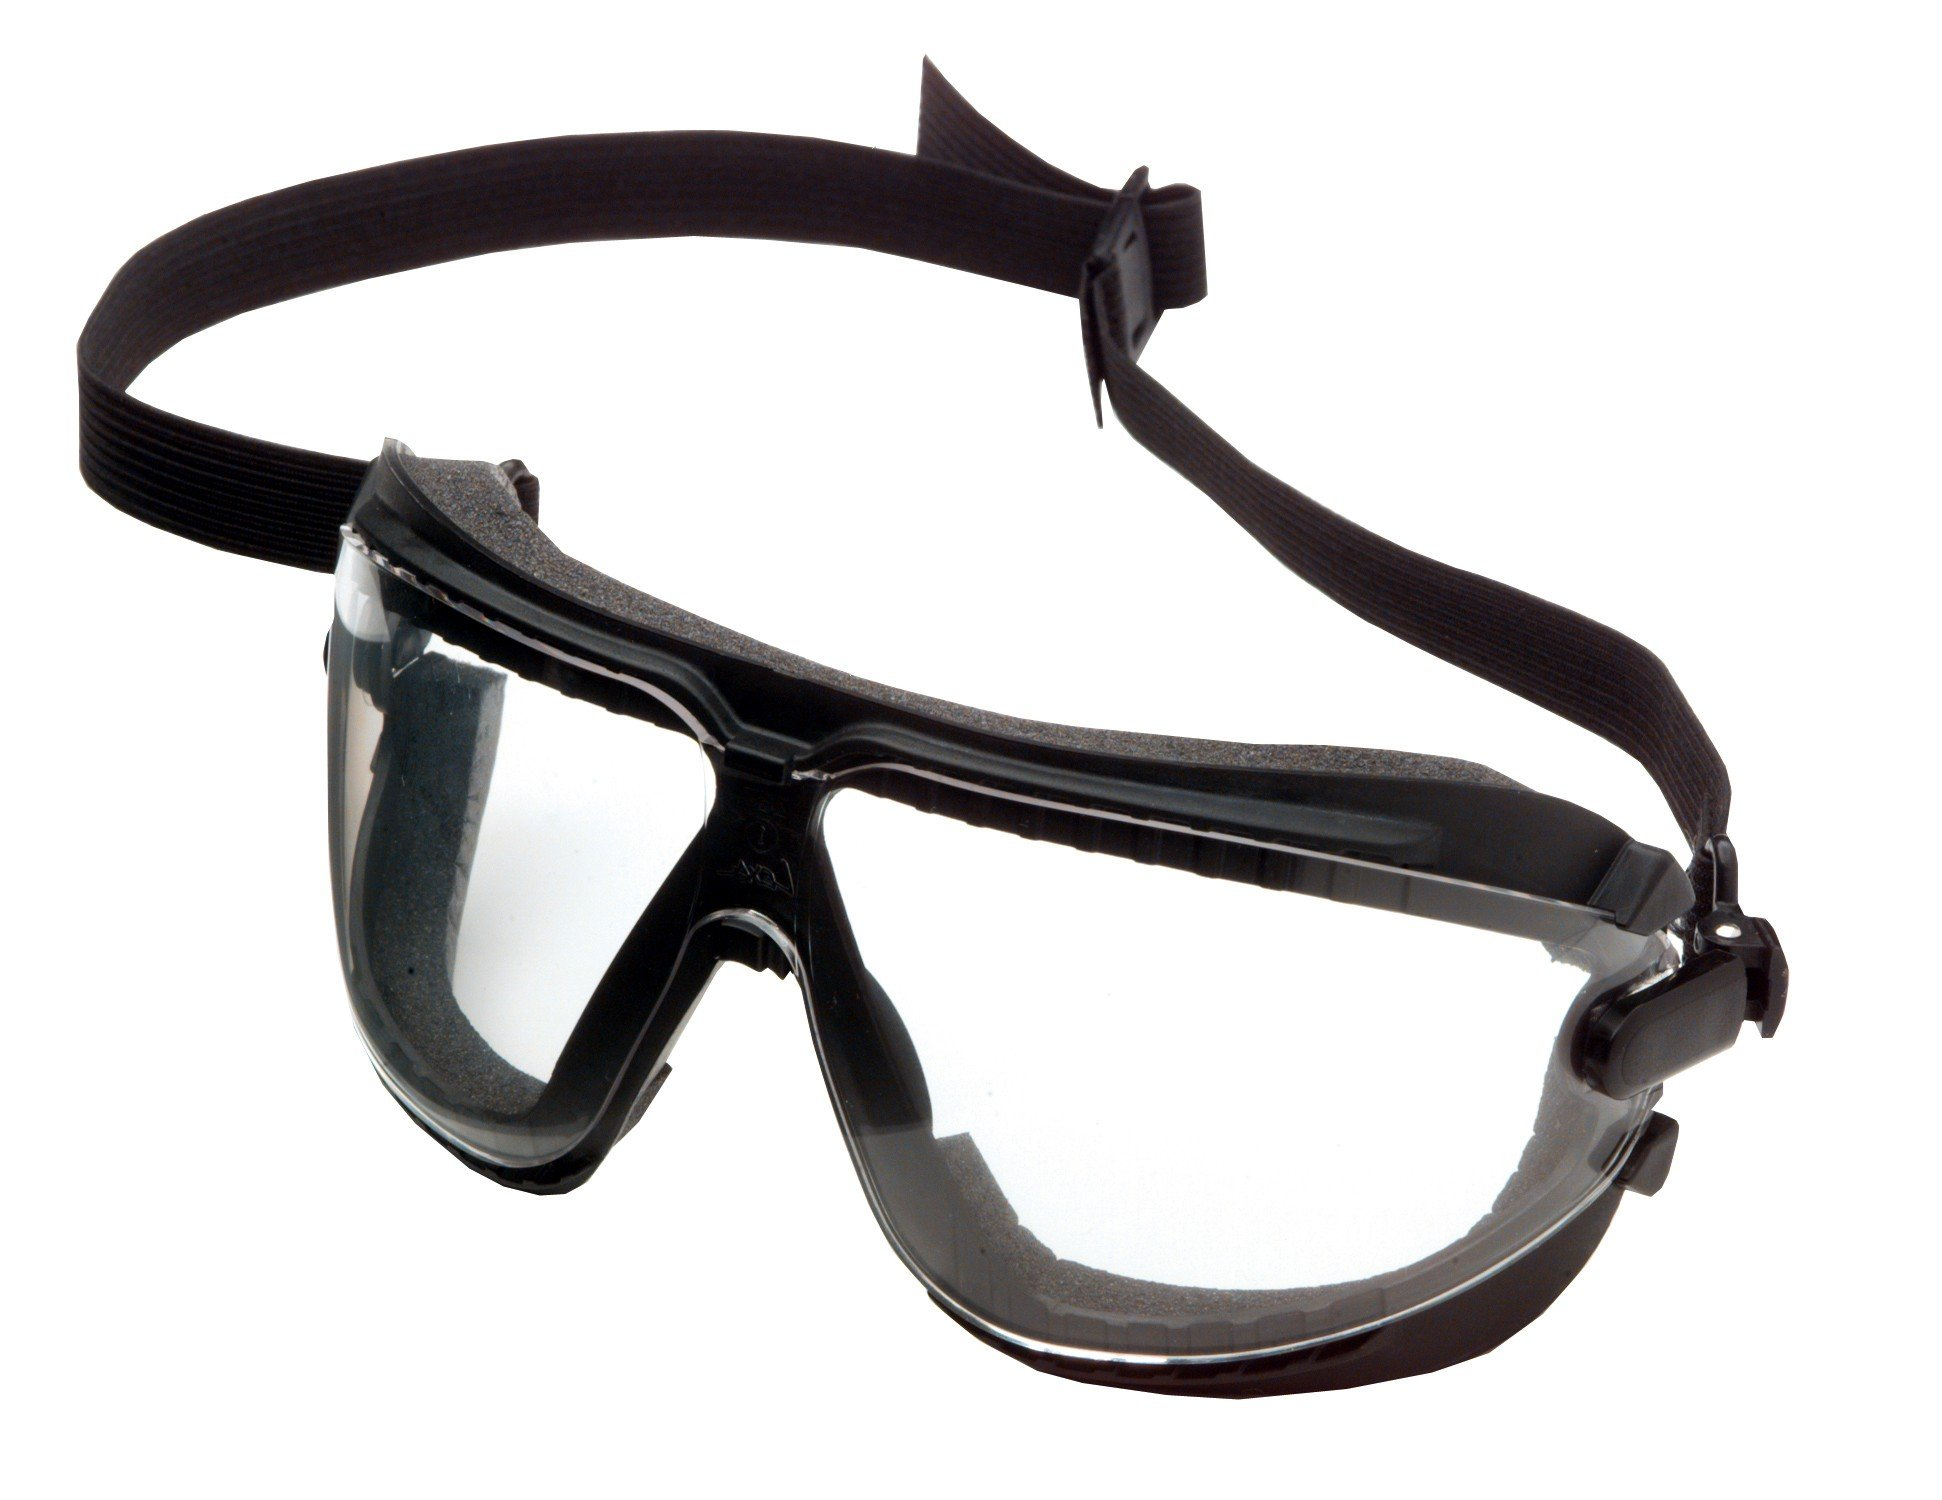 3M Gogglegear Safety Goggles, 16617-00000-10 Clear Lens, Headband, Medium 10 Ea/Case